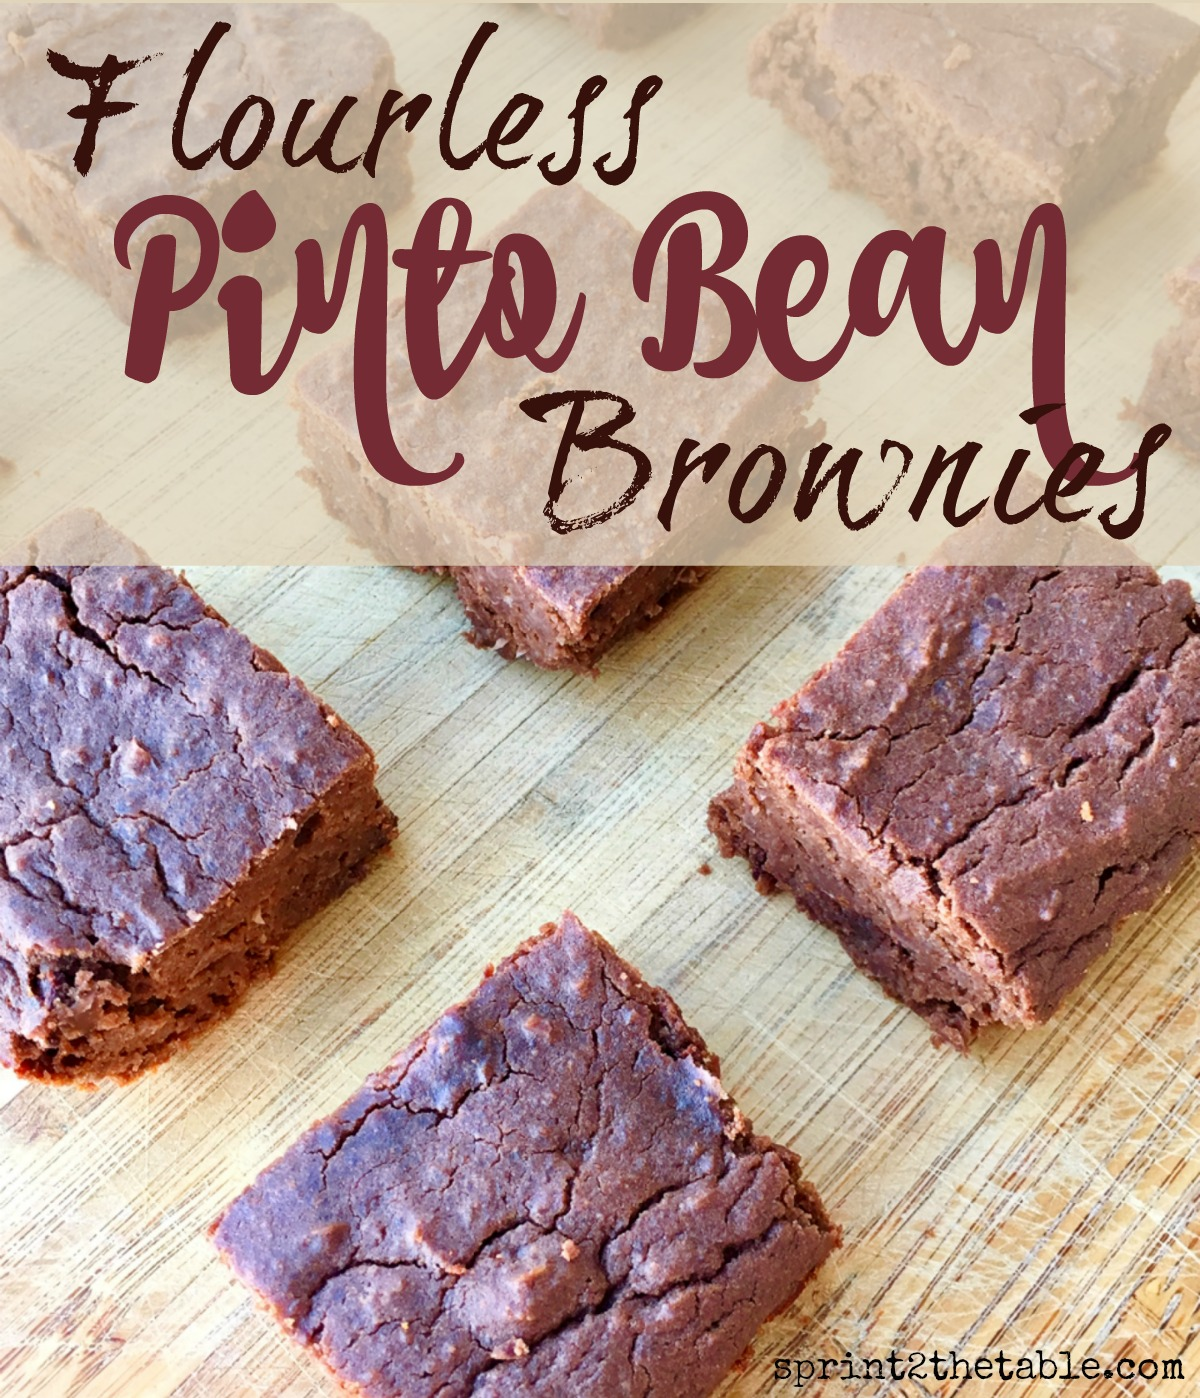 These Flourless Pinto Bean Brownies are gluten-free, sugar-free, and dairy-free. And they're so good they'll fool your whole family!